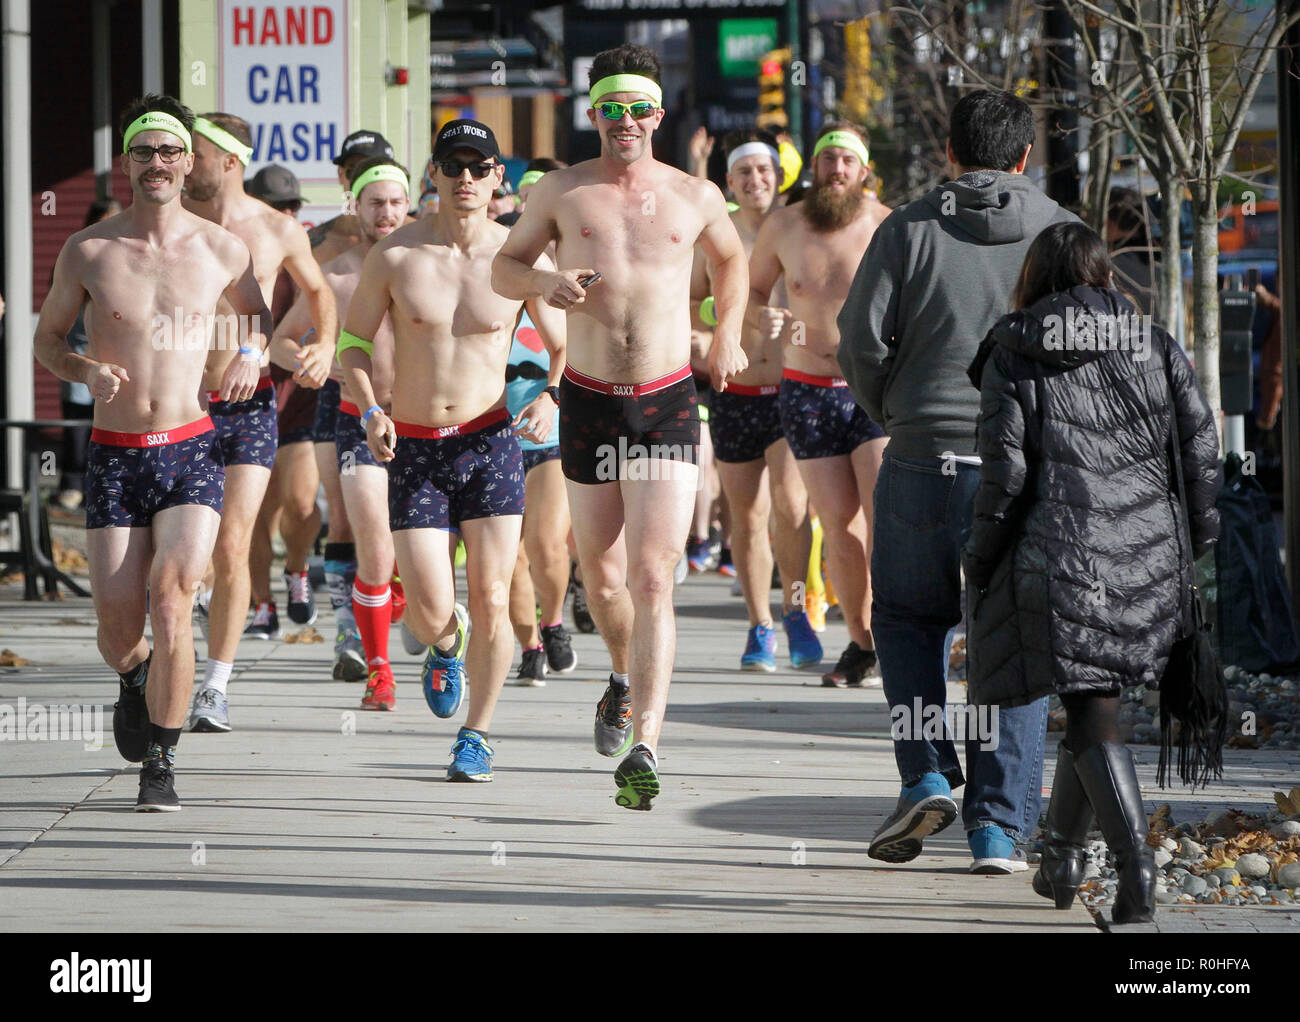 Vancouver, Canada. 4th Nov, 2018. Participants run on the street during the Movember Undie Run in Vancouver, Canada, Nov. 4, 2018. Hundreds of runners participated in the event to raise public awareness of men's health issues. Credit: Liang Sen/Xinhua/Alamy Live News - Stock Image